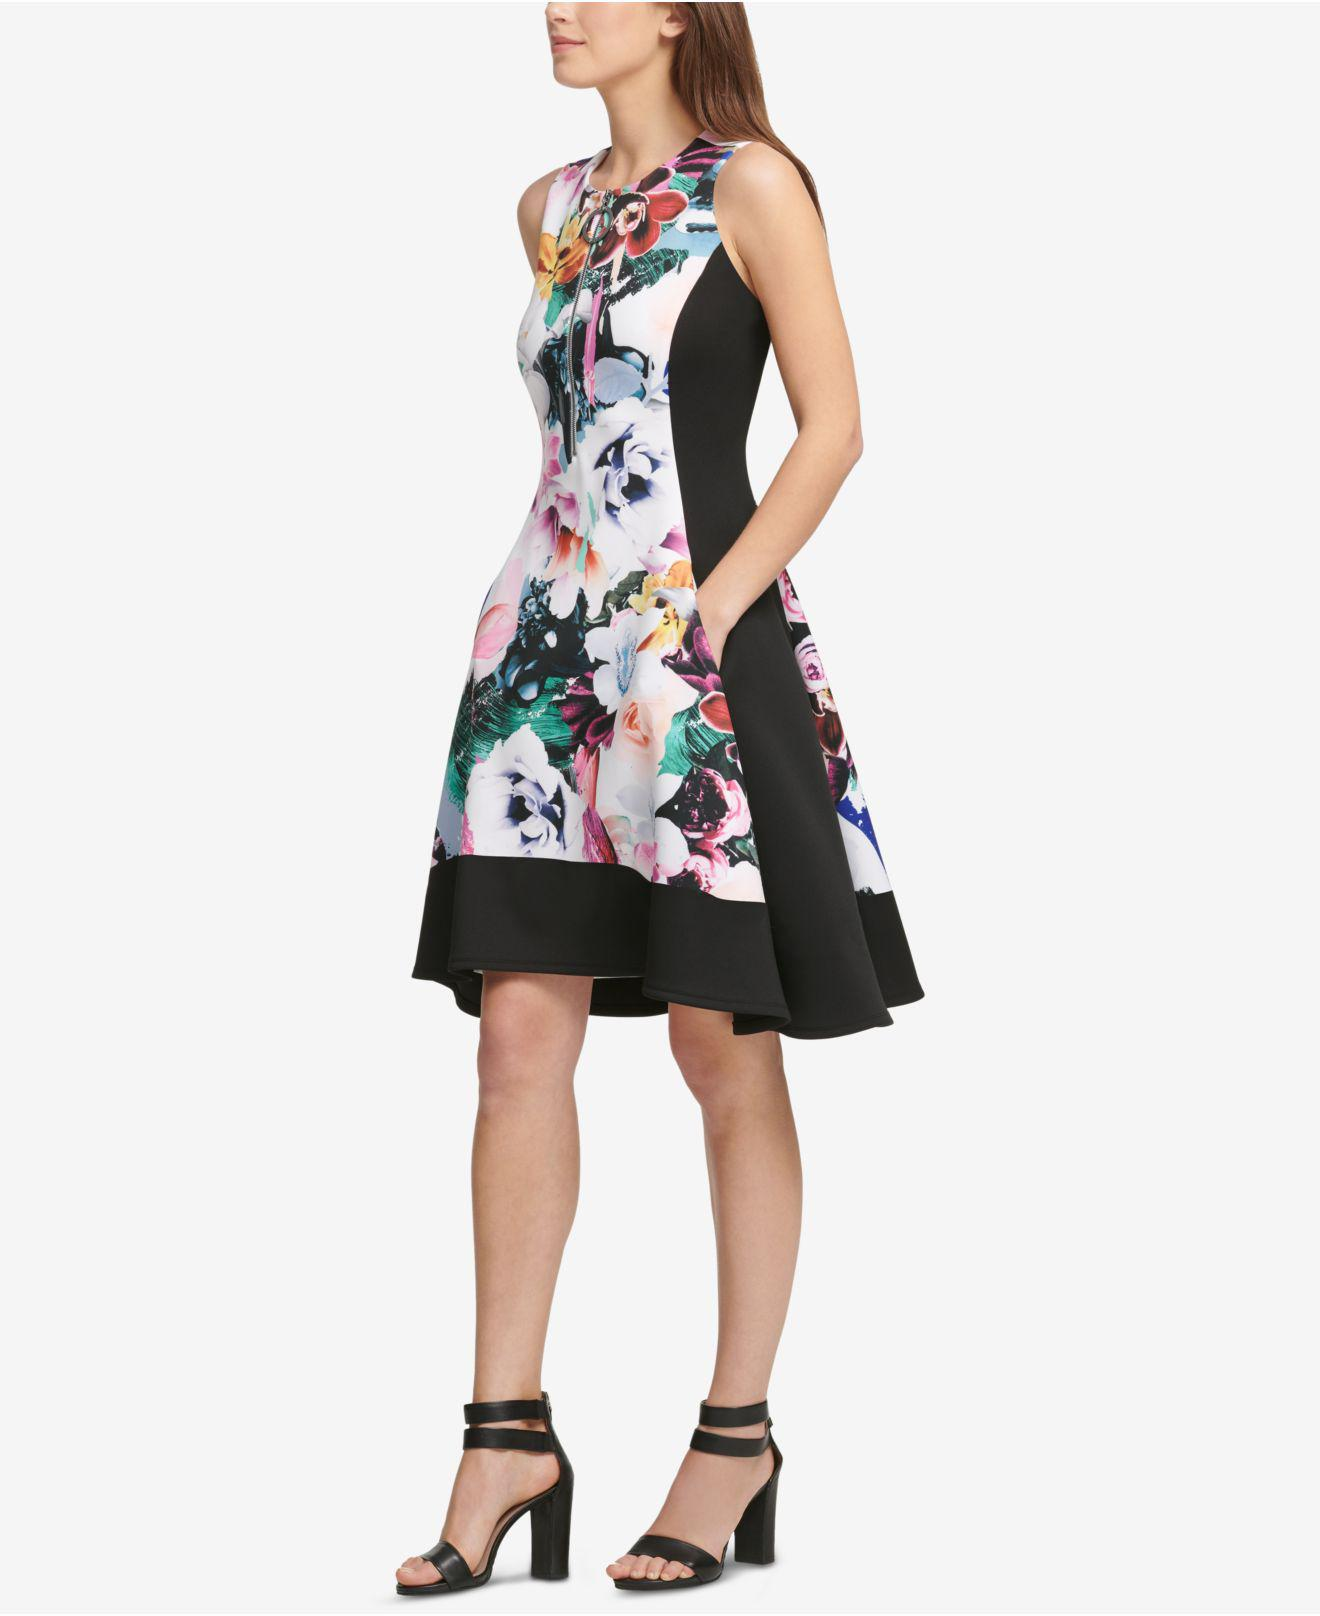 8243268d DKNY Colorblocked Floral Fit & Flare Dress, Created For Macy's in ...